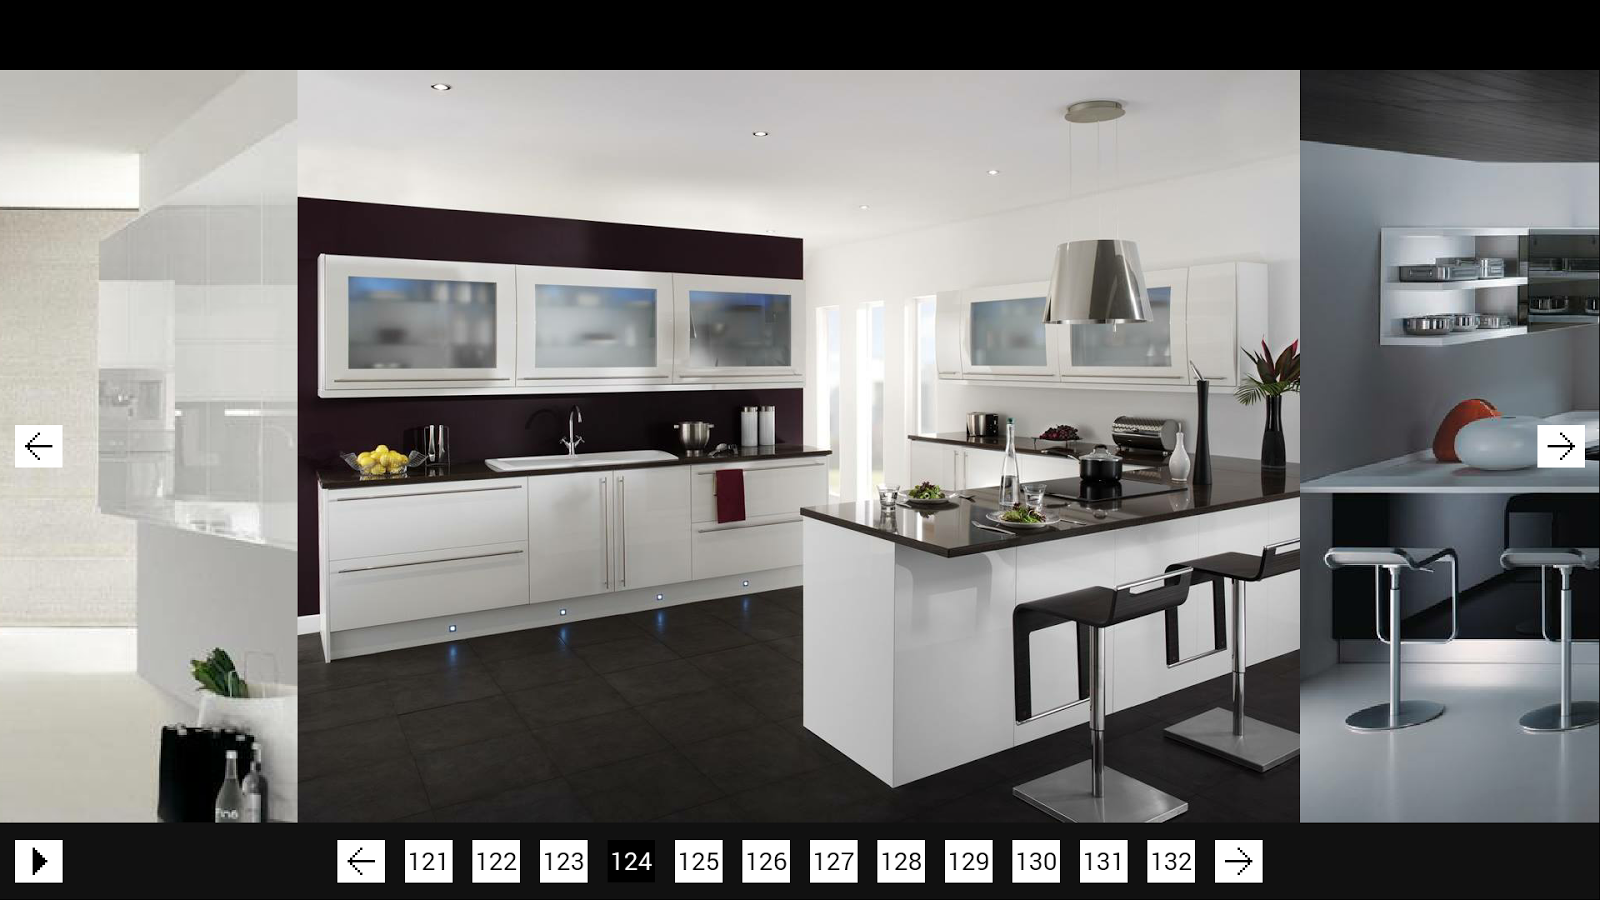 Kitchen decor ideas android apps on google play for Kitchen ideas app